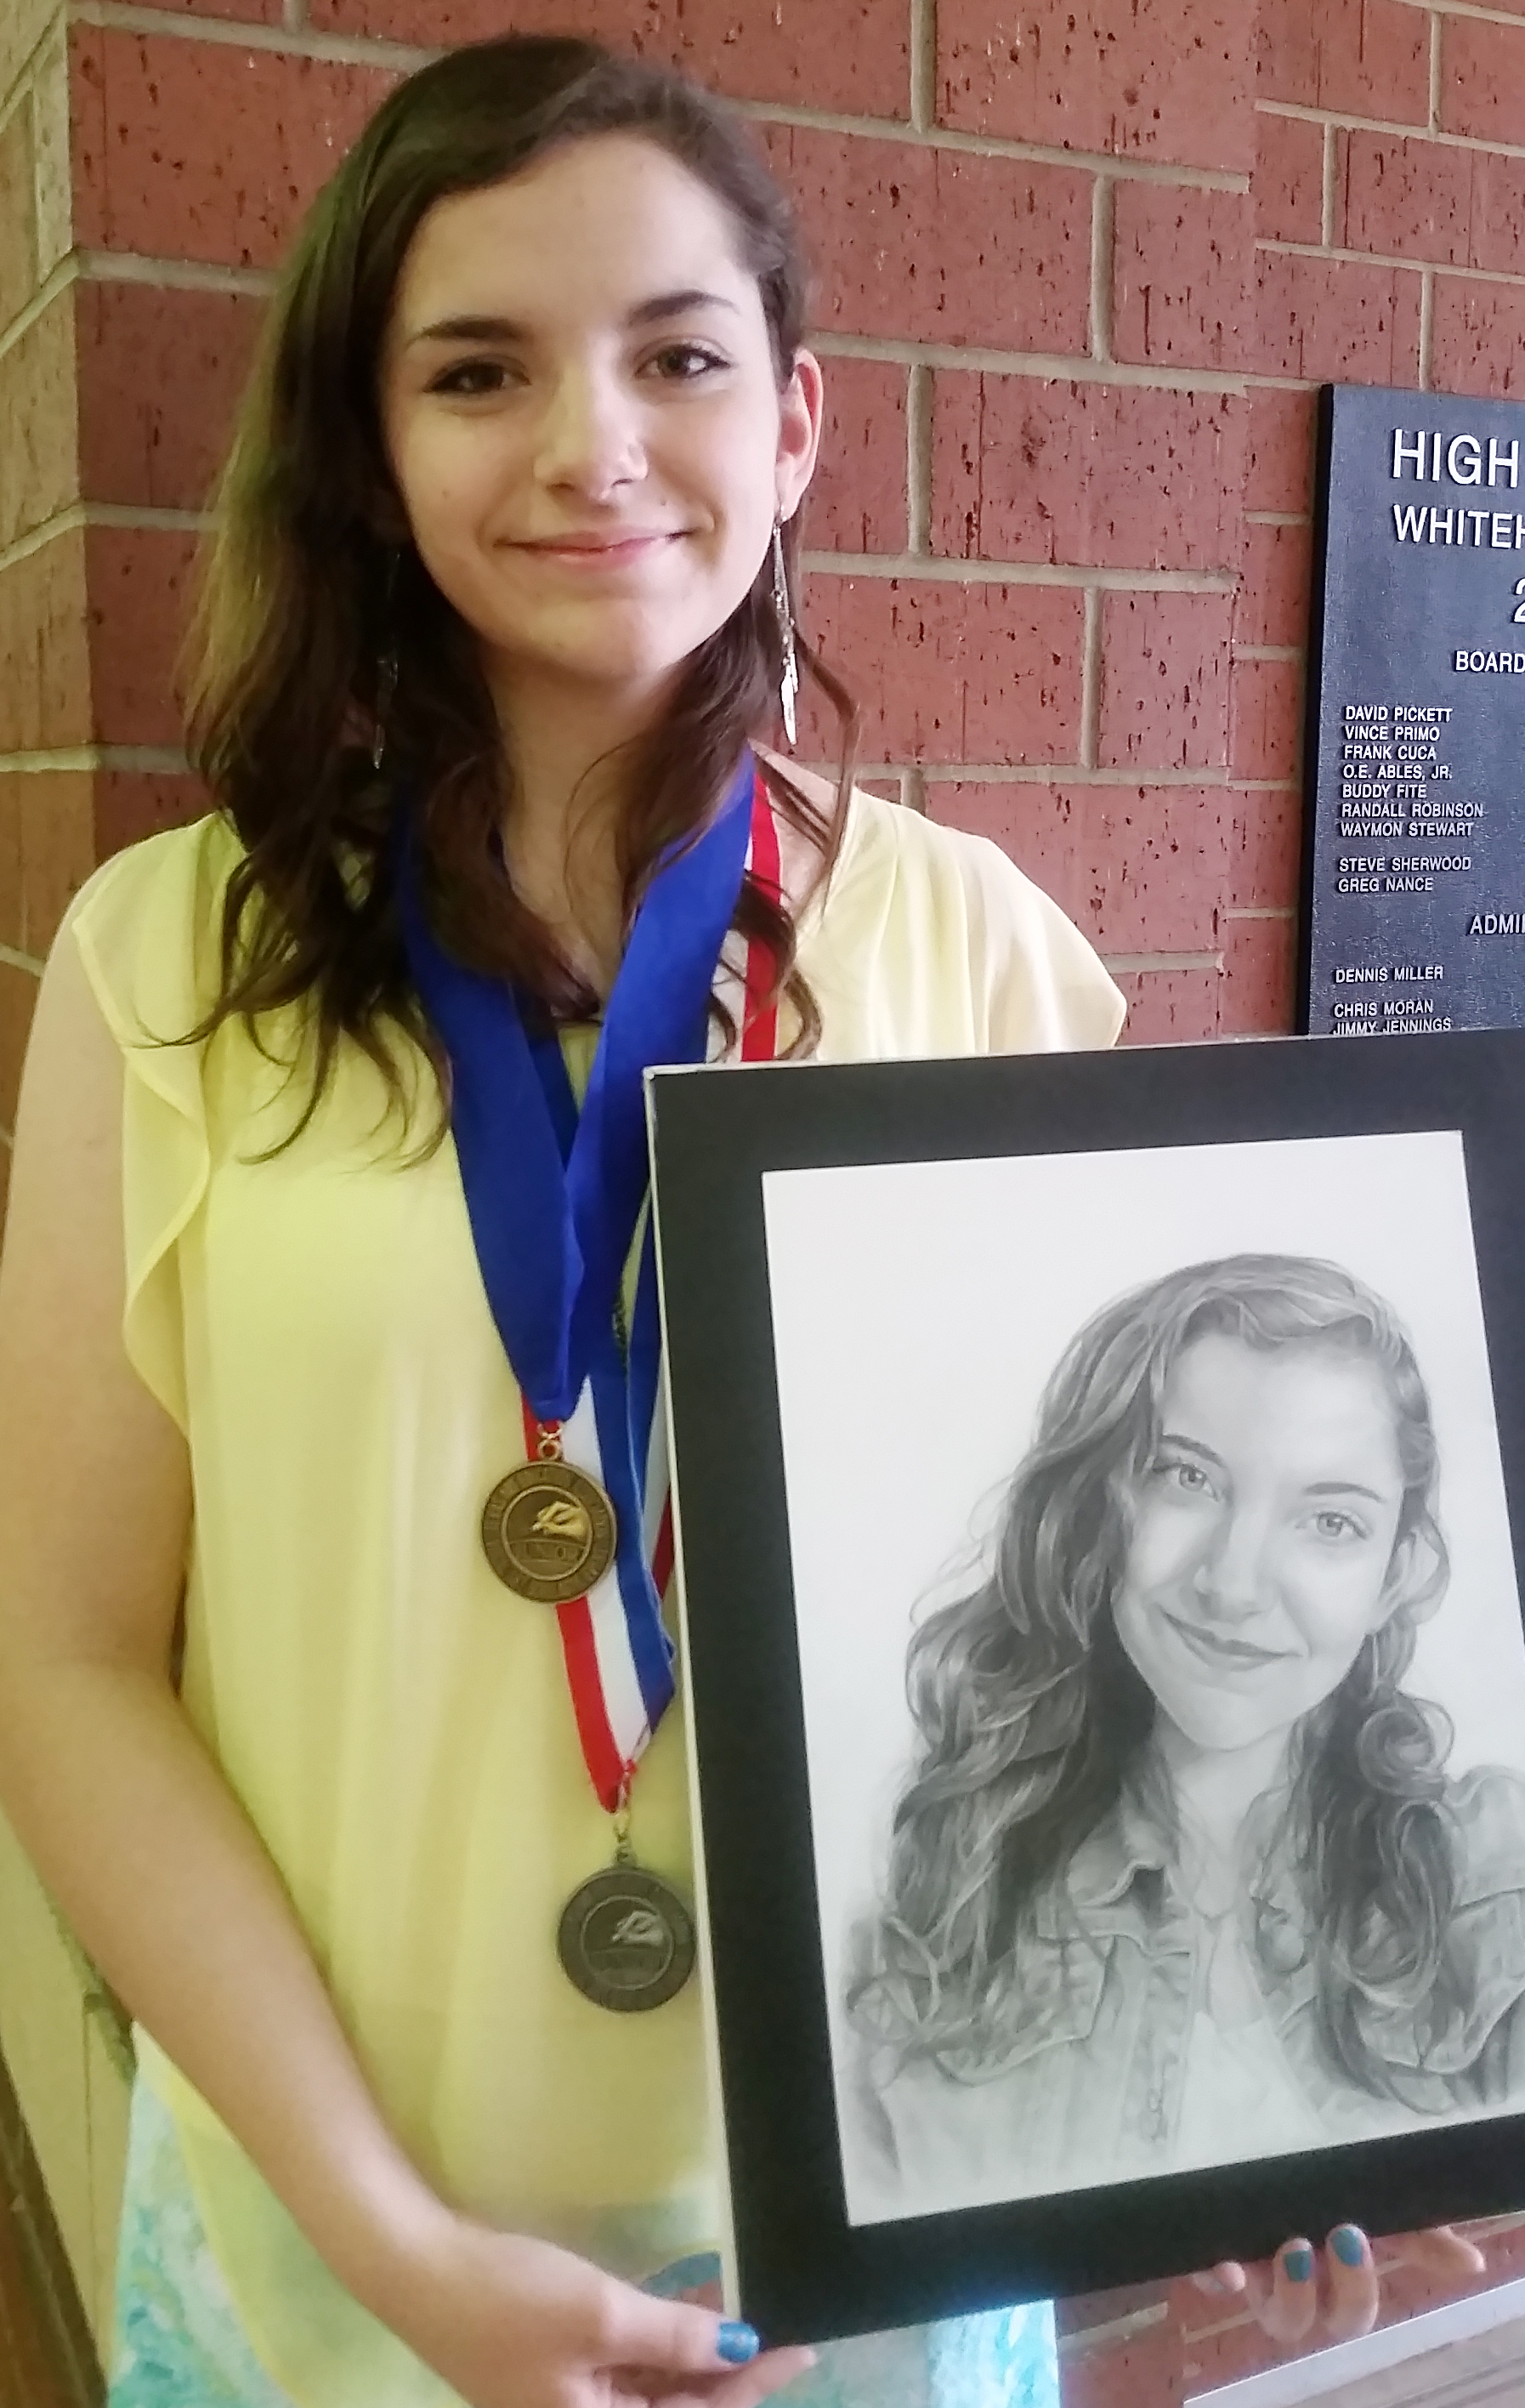 Rachel Receives Highest Honors with Self Portrait